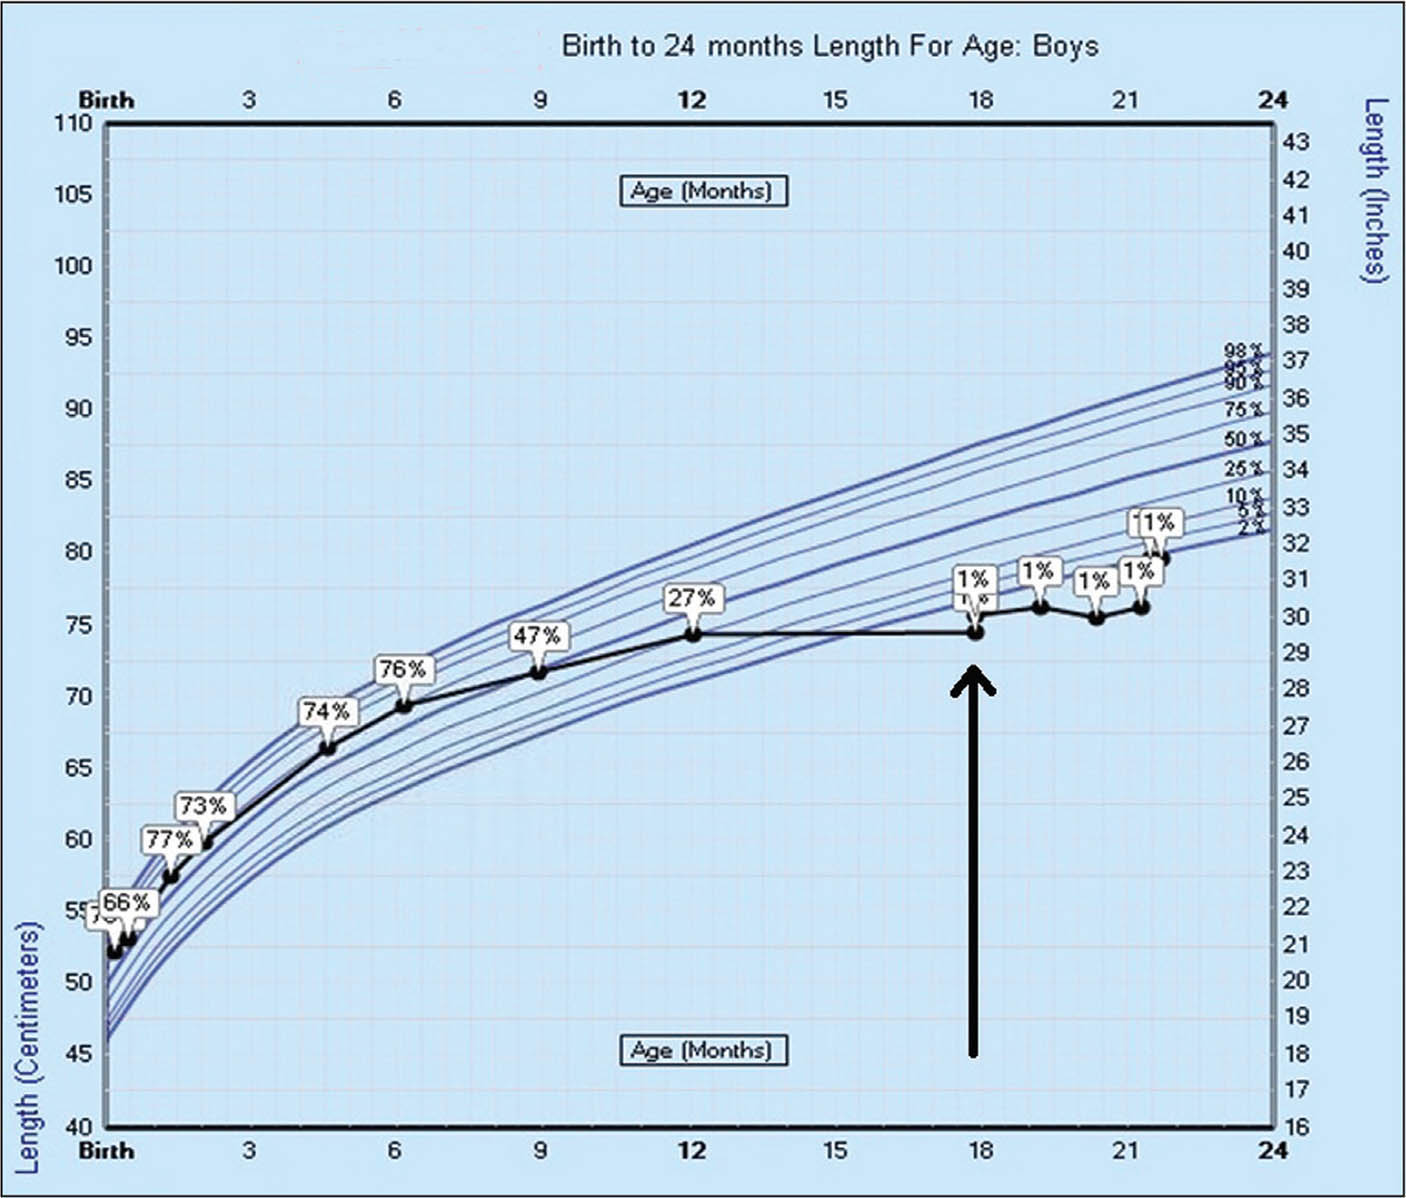 Decline in linear growth velocity starting after age 6 months, from the 76th percentile to <1st percentile.